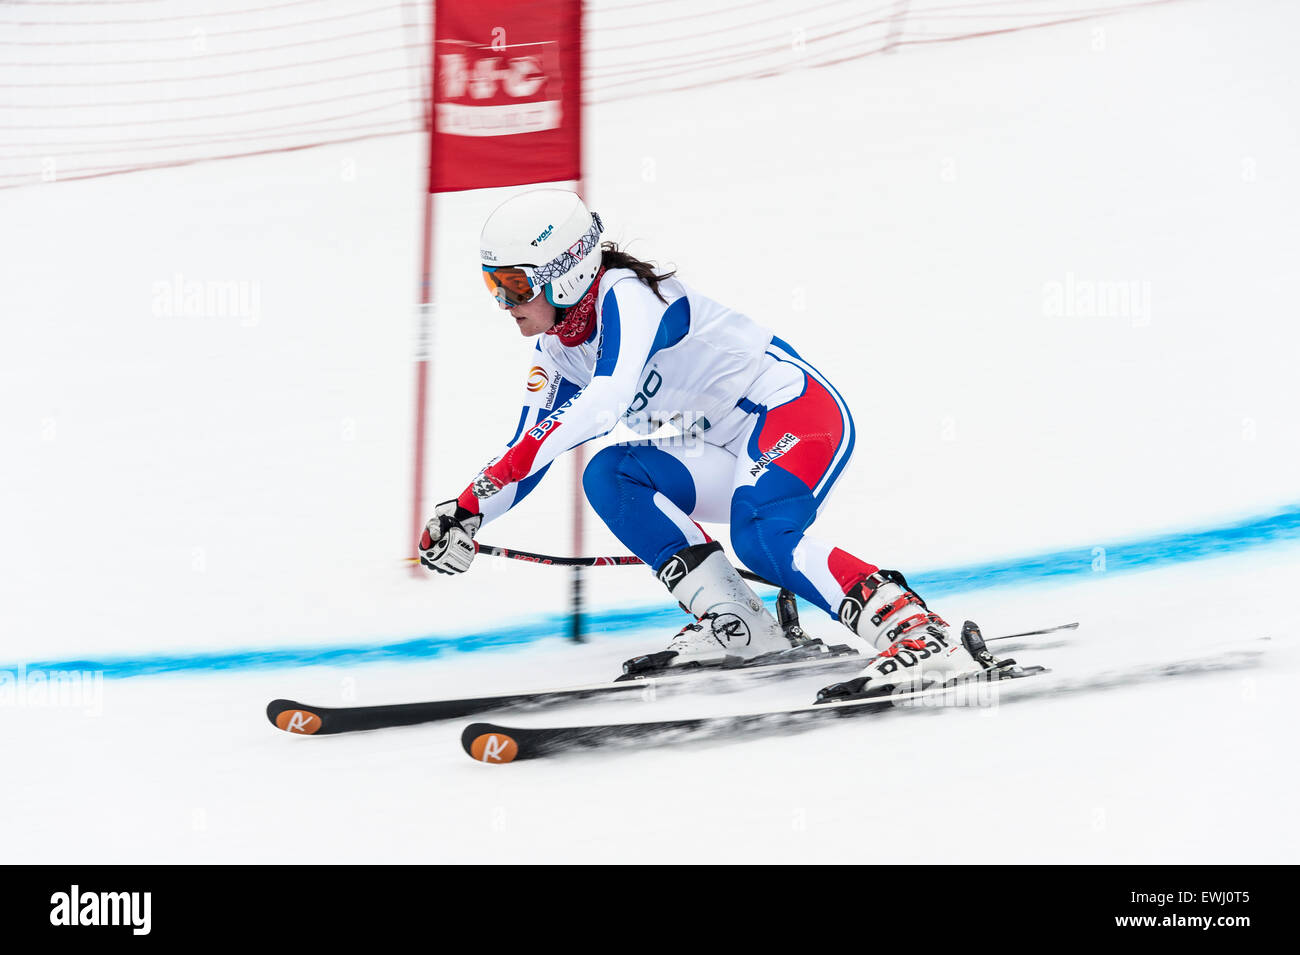 A disabled competitor, with left lower arm amputated, passing through a gate in a giant slalom race - Stock Image